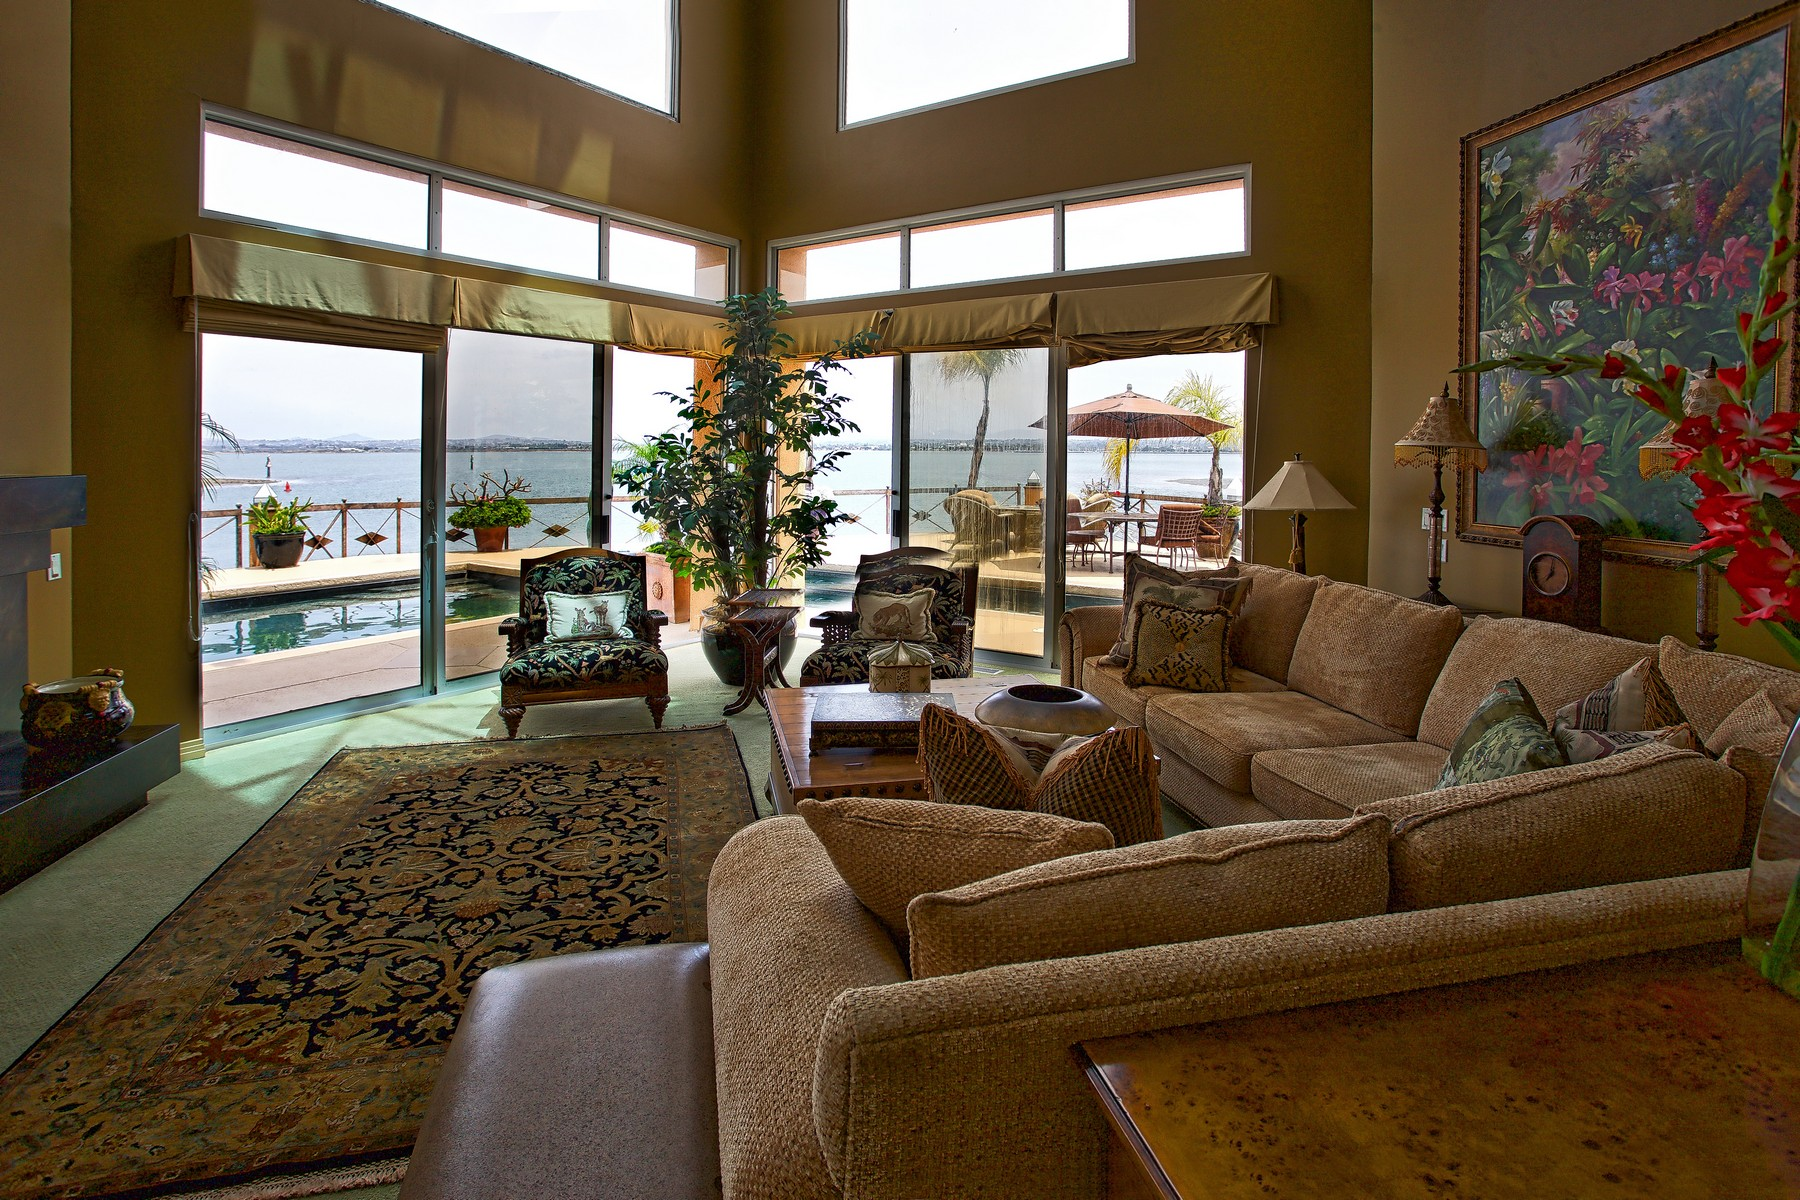 Additional photo for property listing at 3 Blue Anchor Cay Road  Coronado, Калифорния 92118 Соединенные Штаты